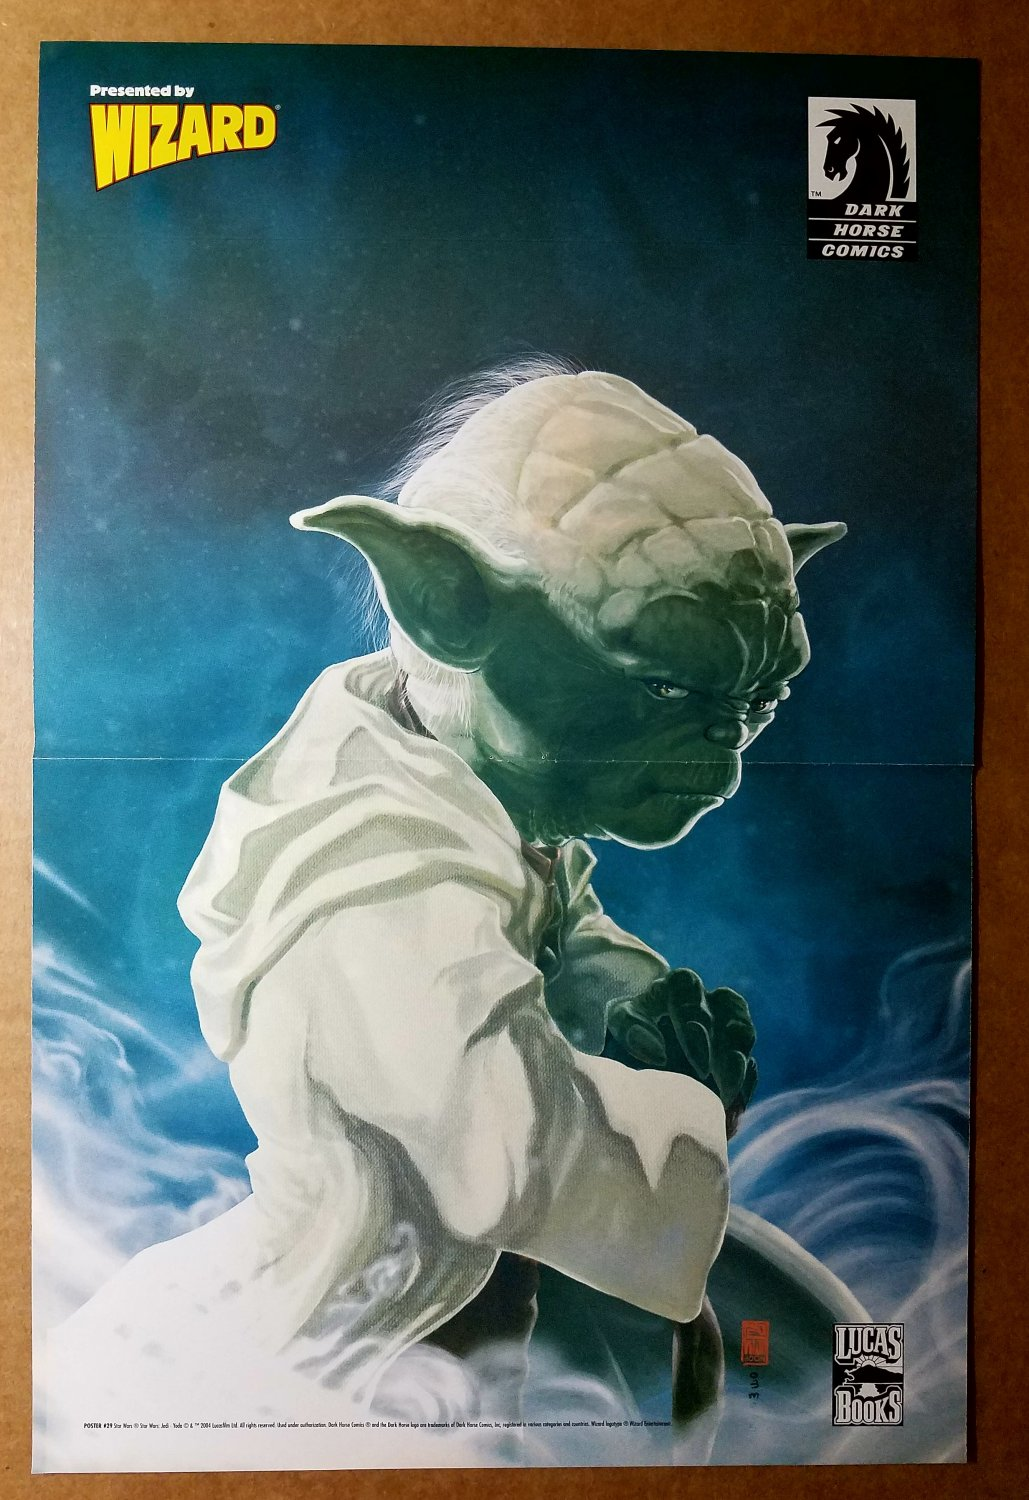 Star Wars Yoda Dark Horse Comics Poster by Hoon